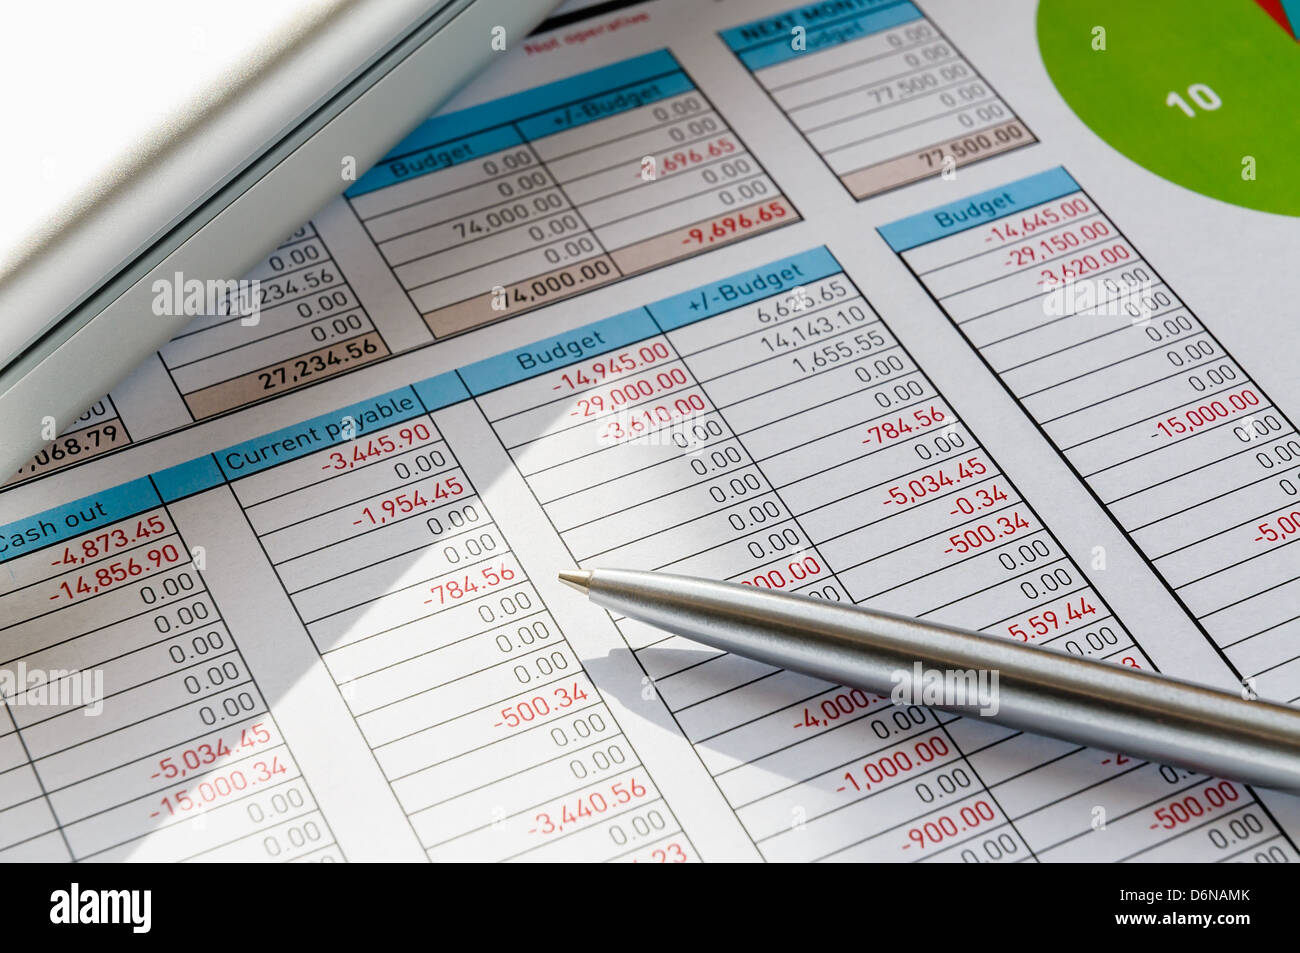 Accounting Form With Pen, In The Businessman's Office - Stock Image